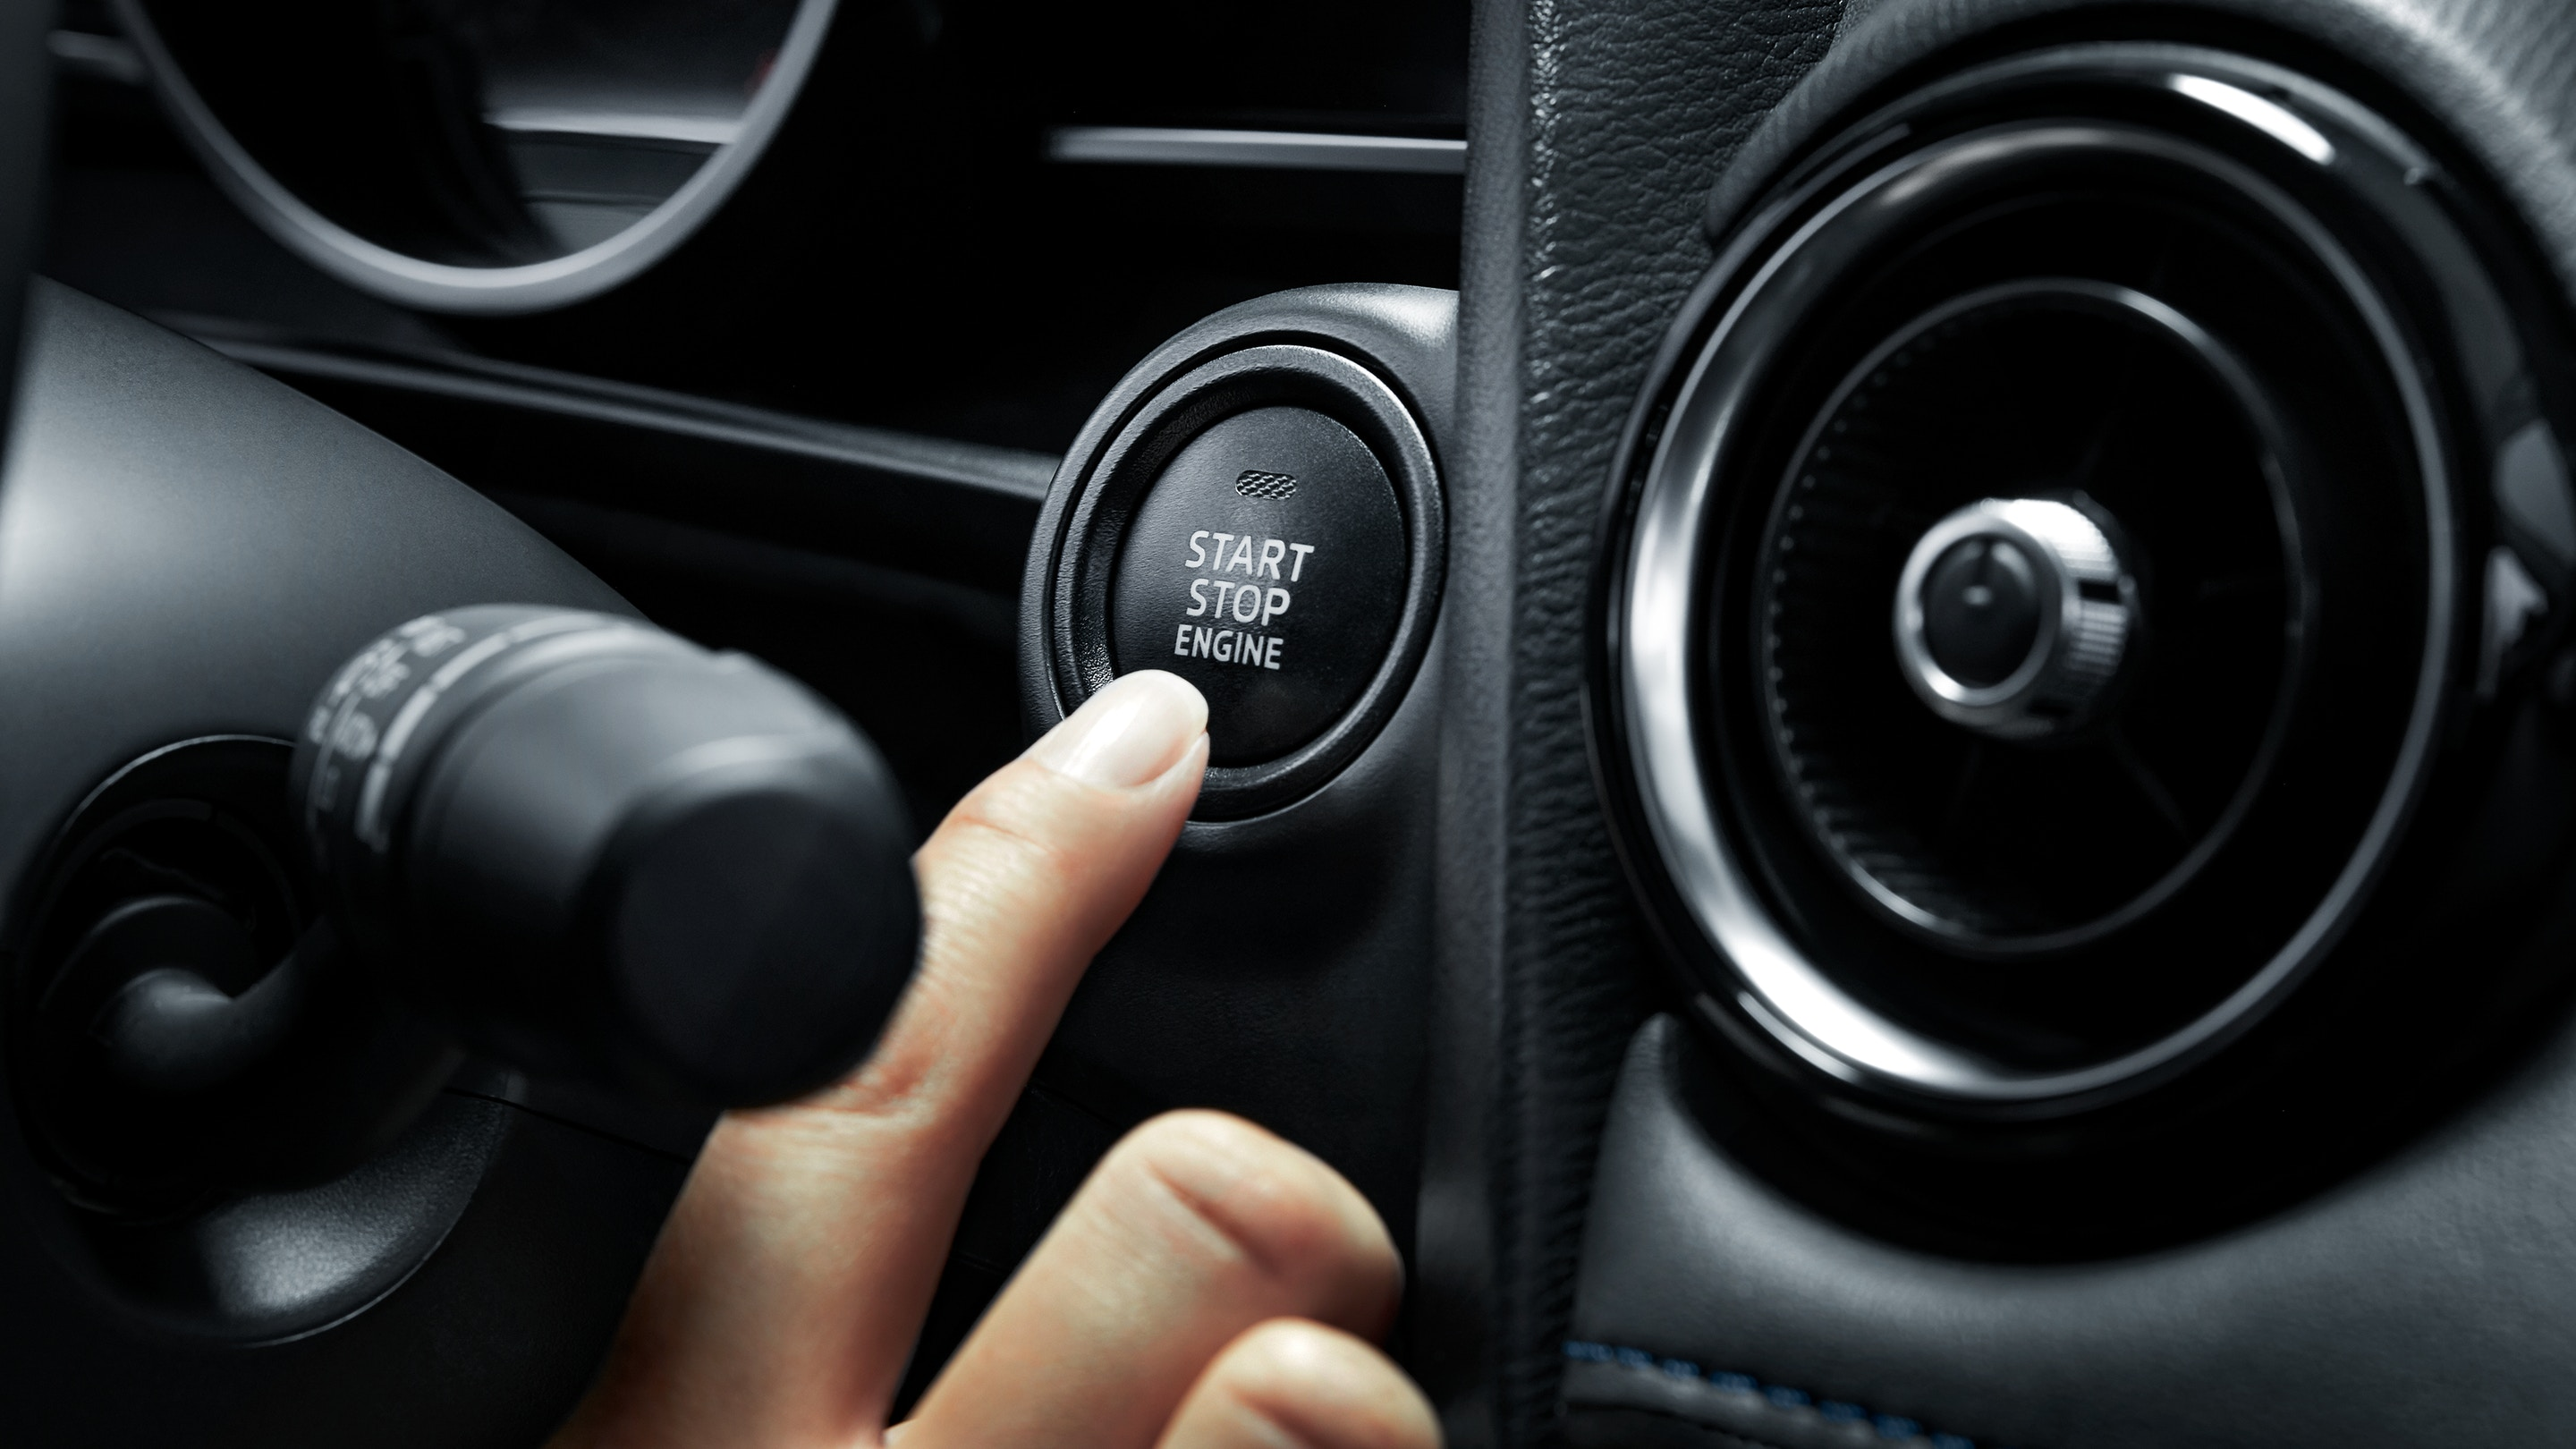 2019 Toyota Yaris' Push Start Button